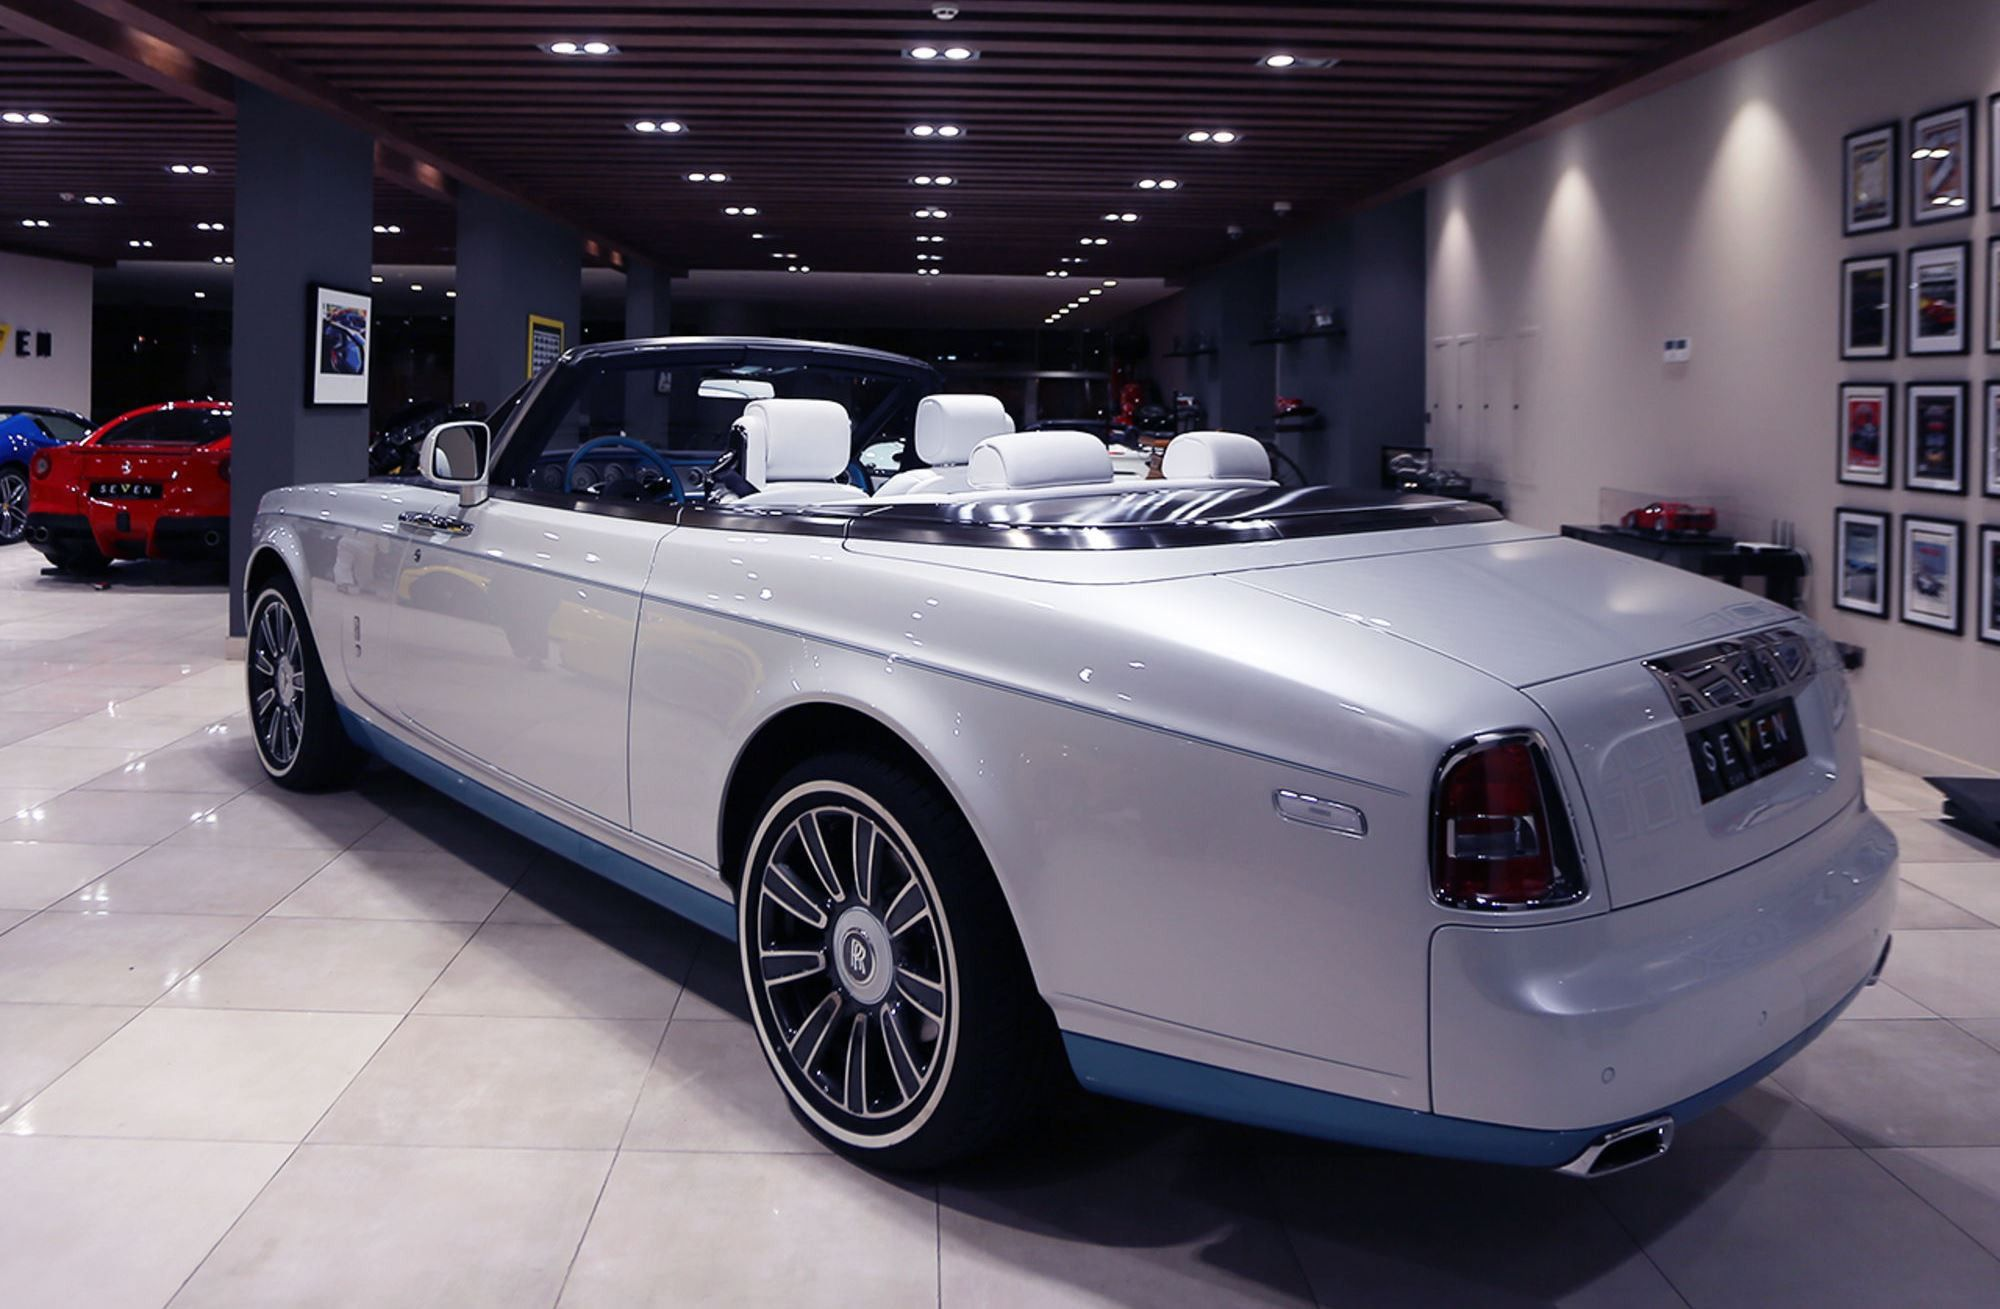 Rolls-Royce Phantom Last of Last